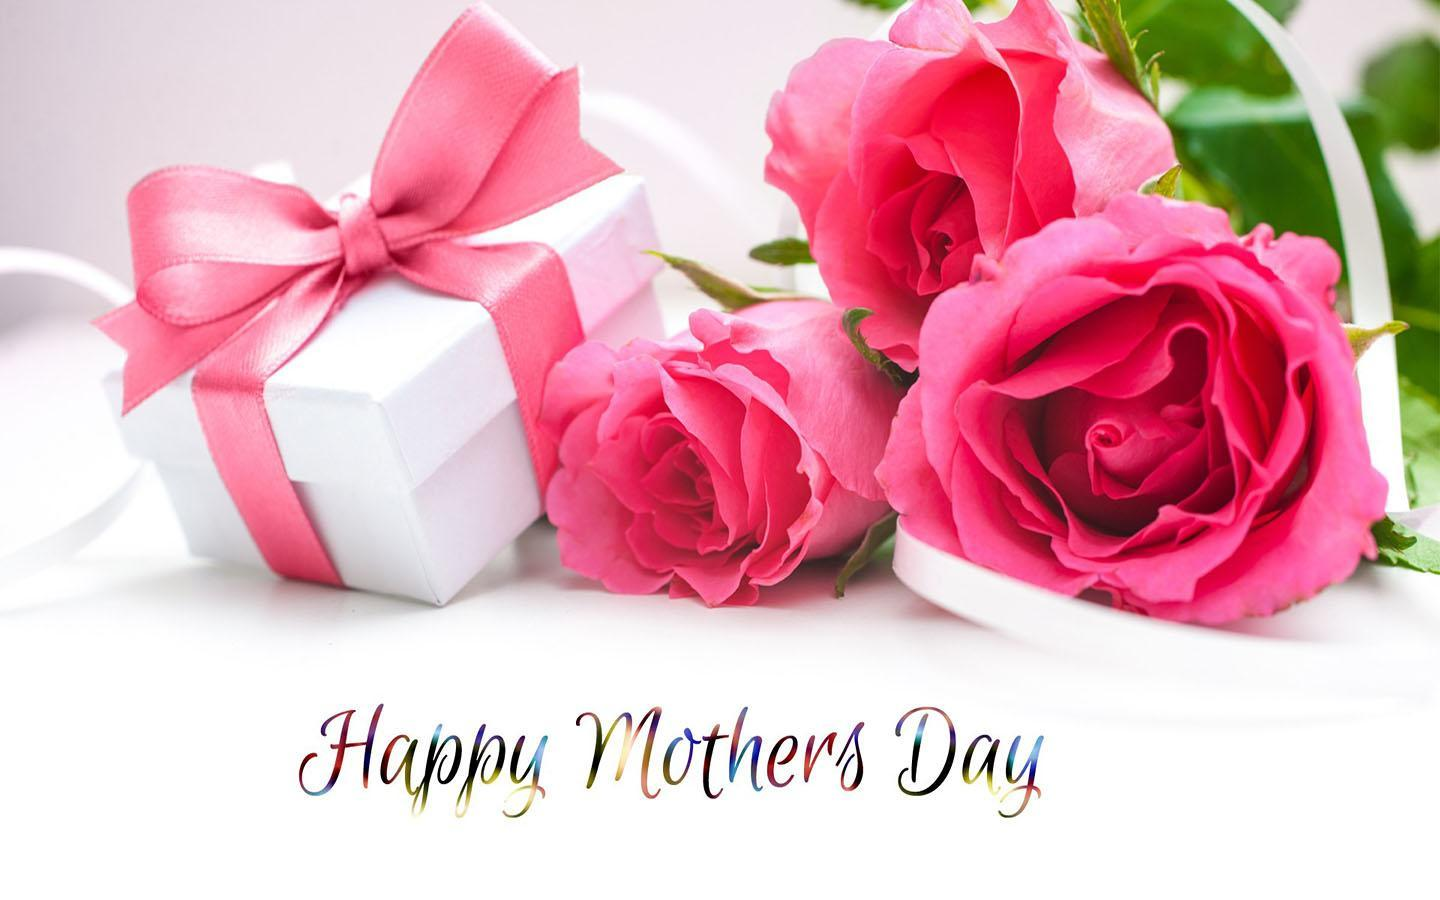 Mother's Day Wallpaper HD - Android Apps on Google Play